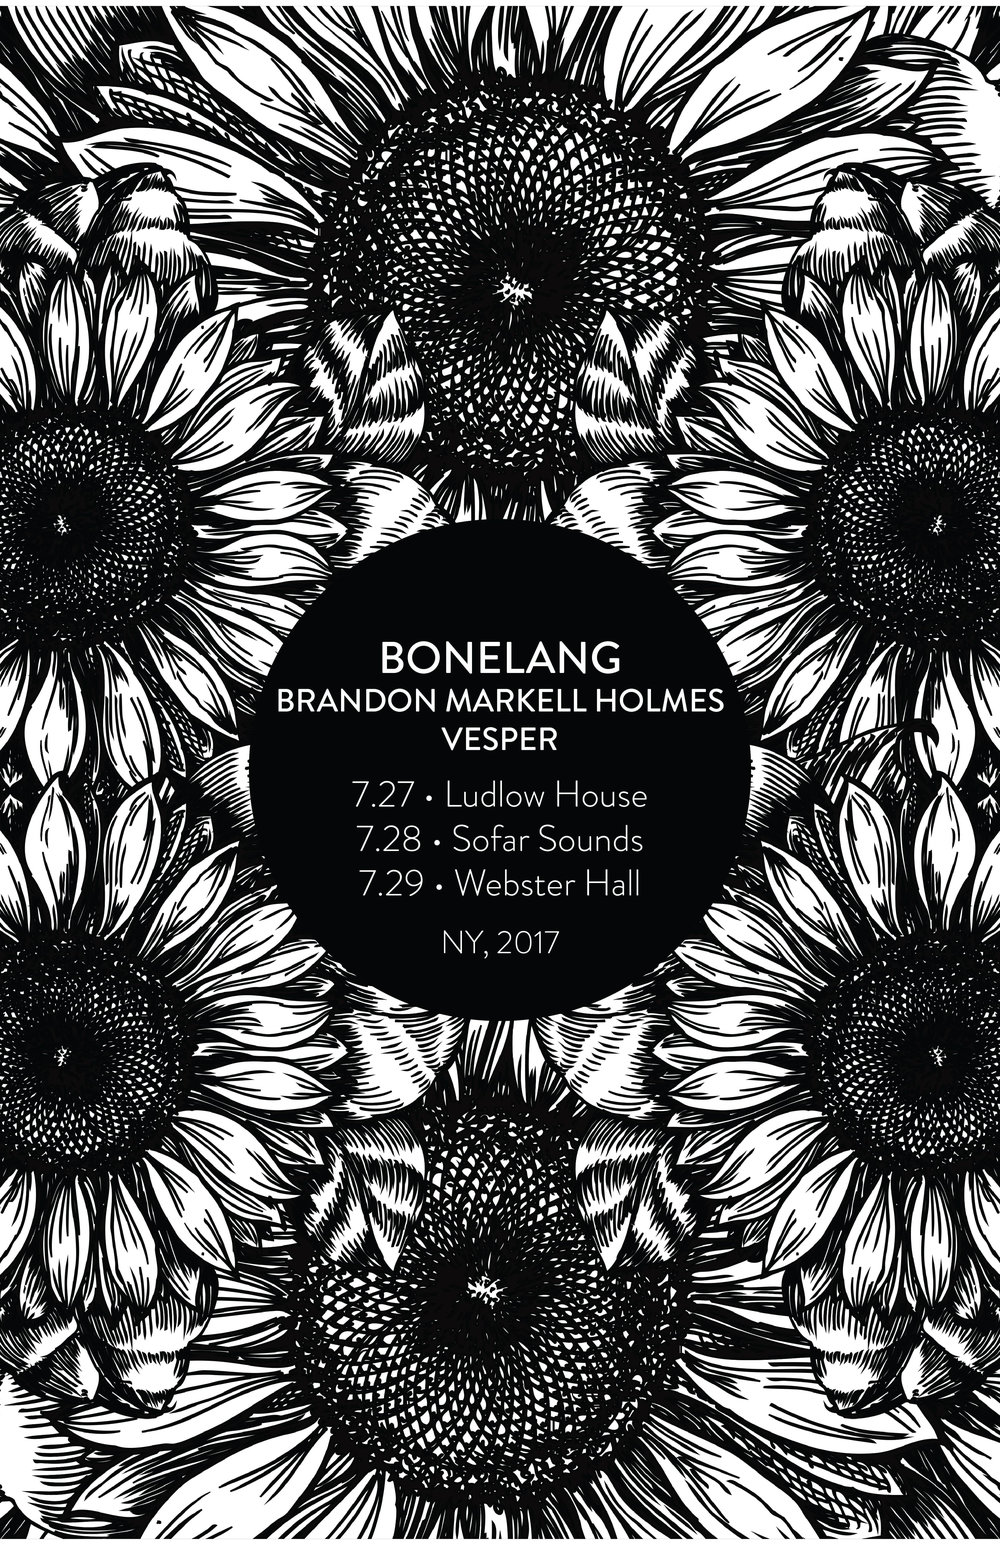 67a52f7a Bonelang has announced their return to New York City for a handful of  select events in July including a headlining show at The Studio at Webster  Hall on ...